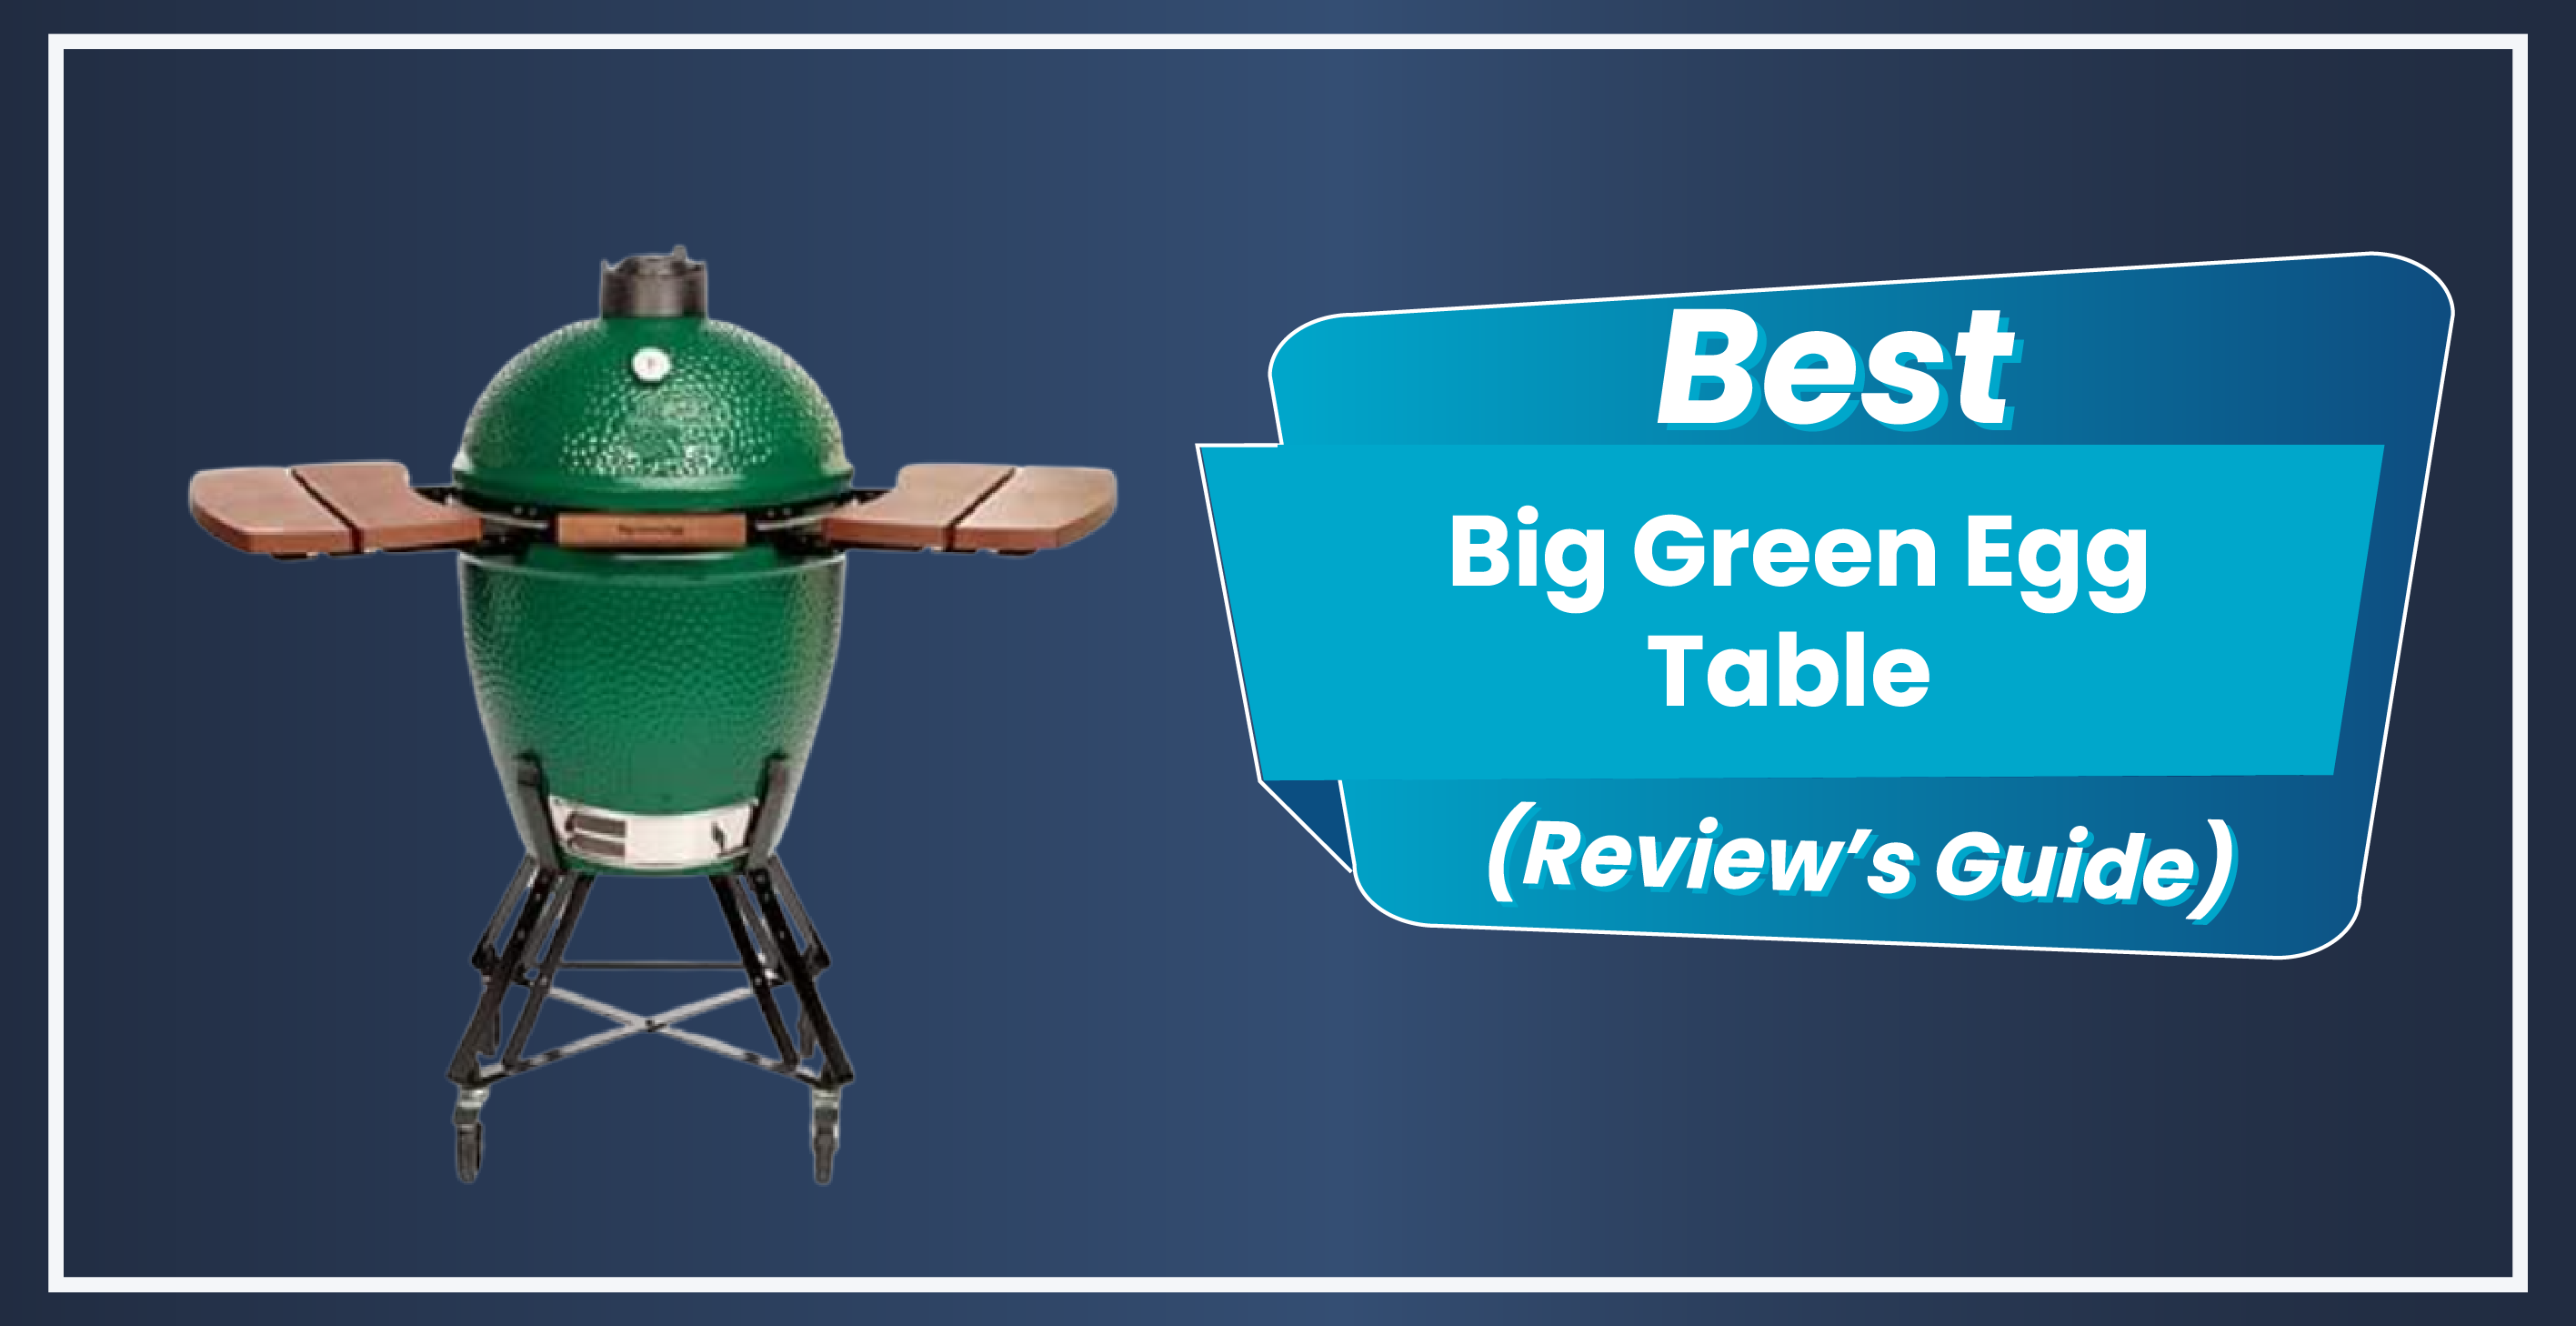 8 Best Big Green Egg Table